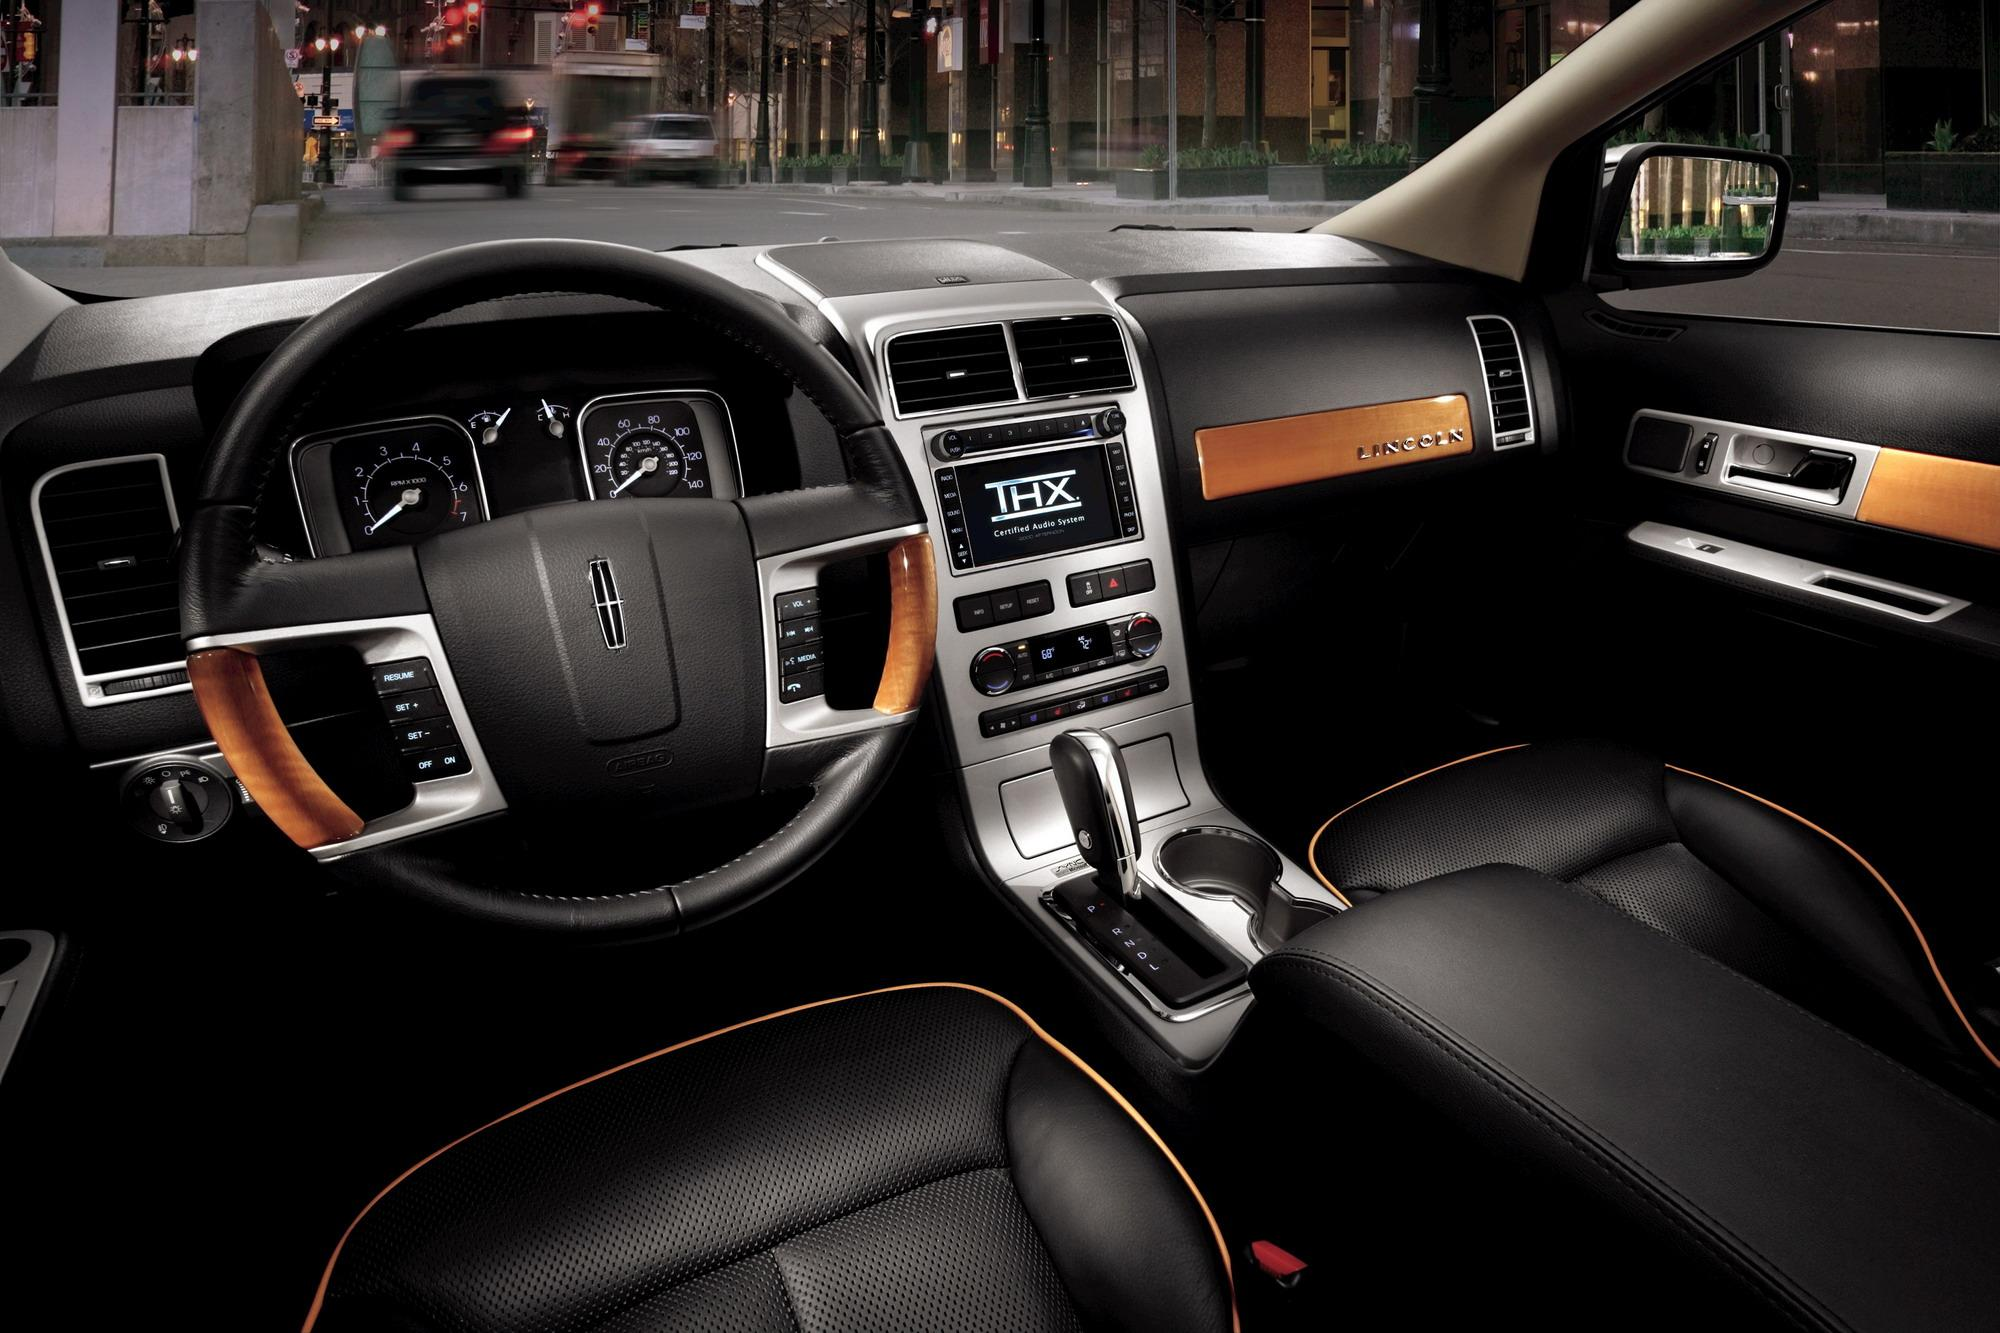 2010 Lincoln MKX | Top Speed. »